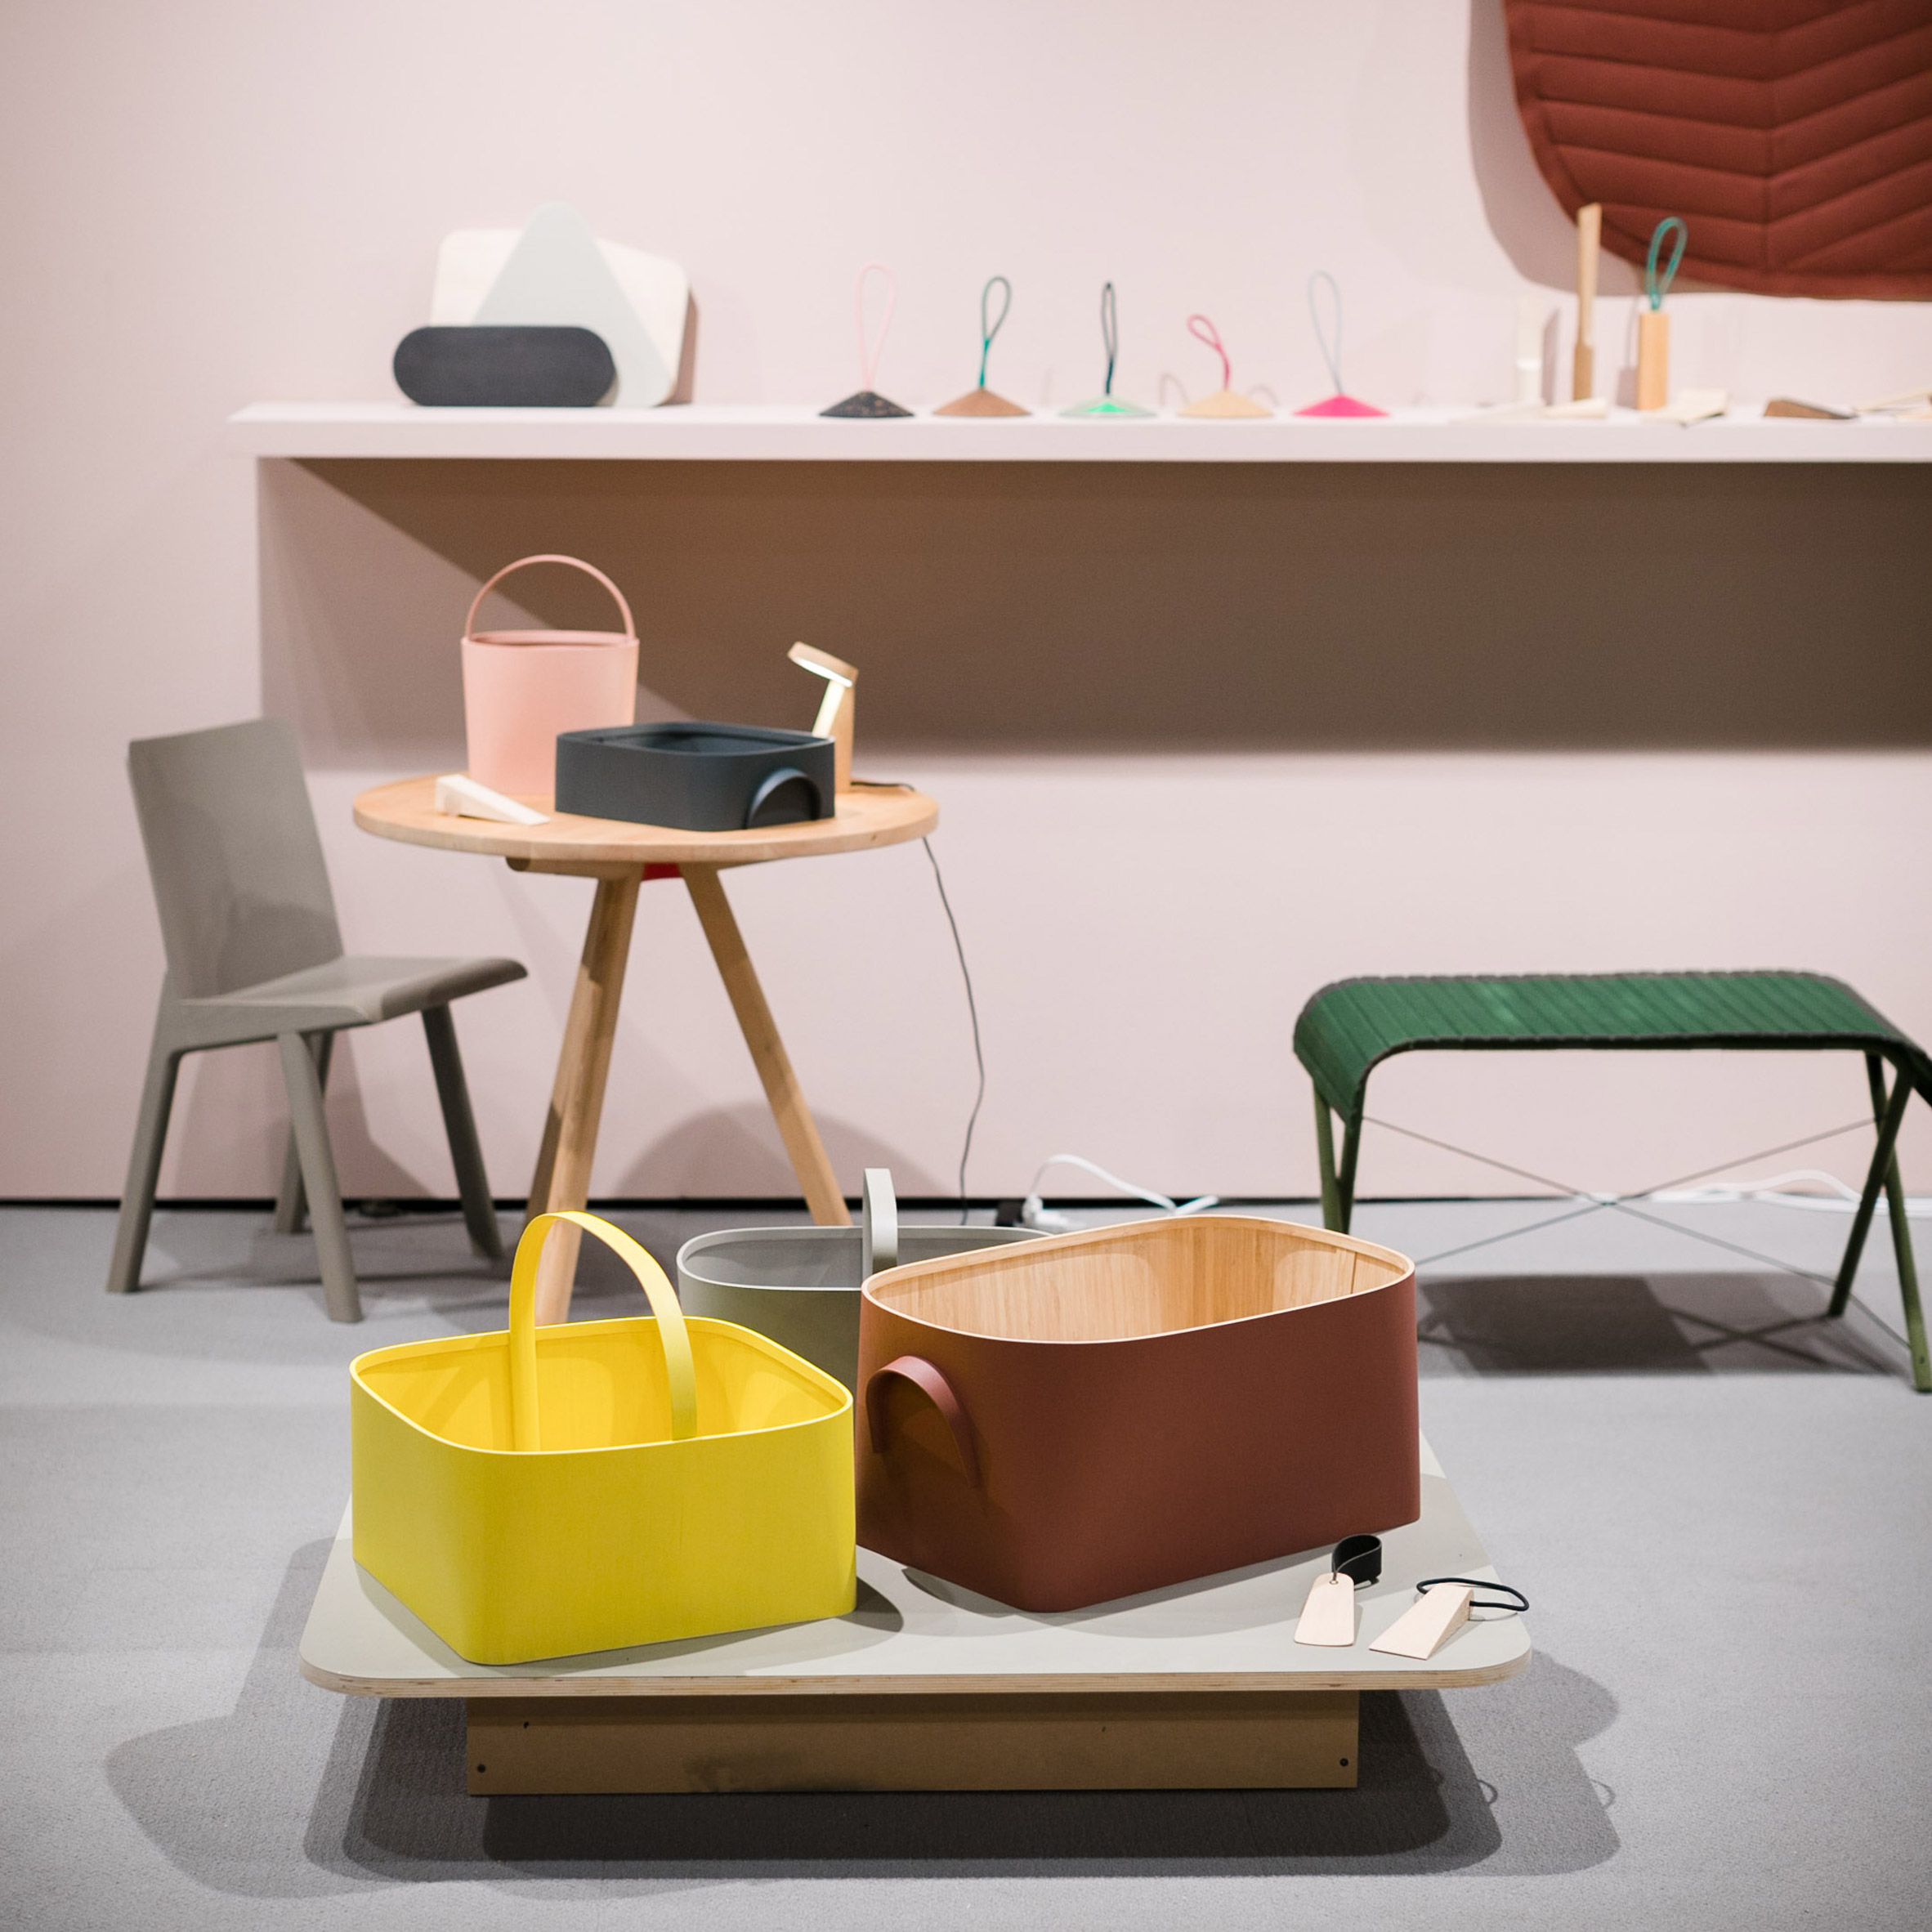 Dezeen's top 10 products and installations at WantedDesign 2017